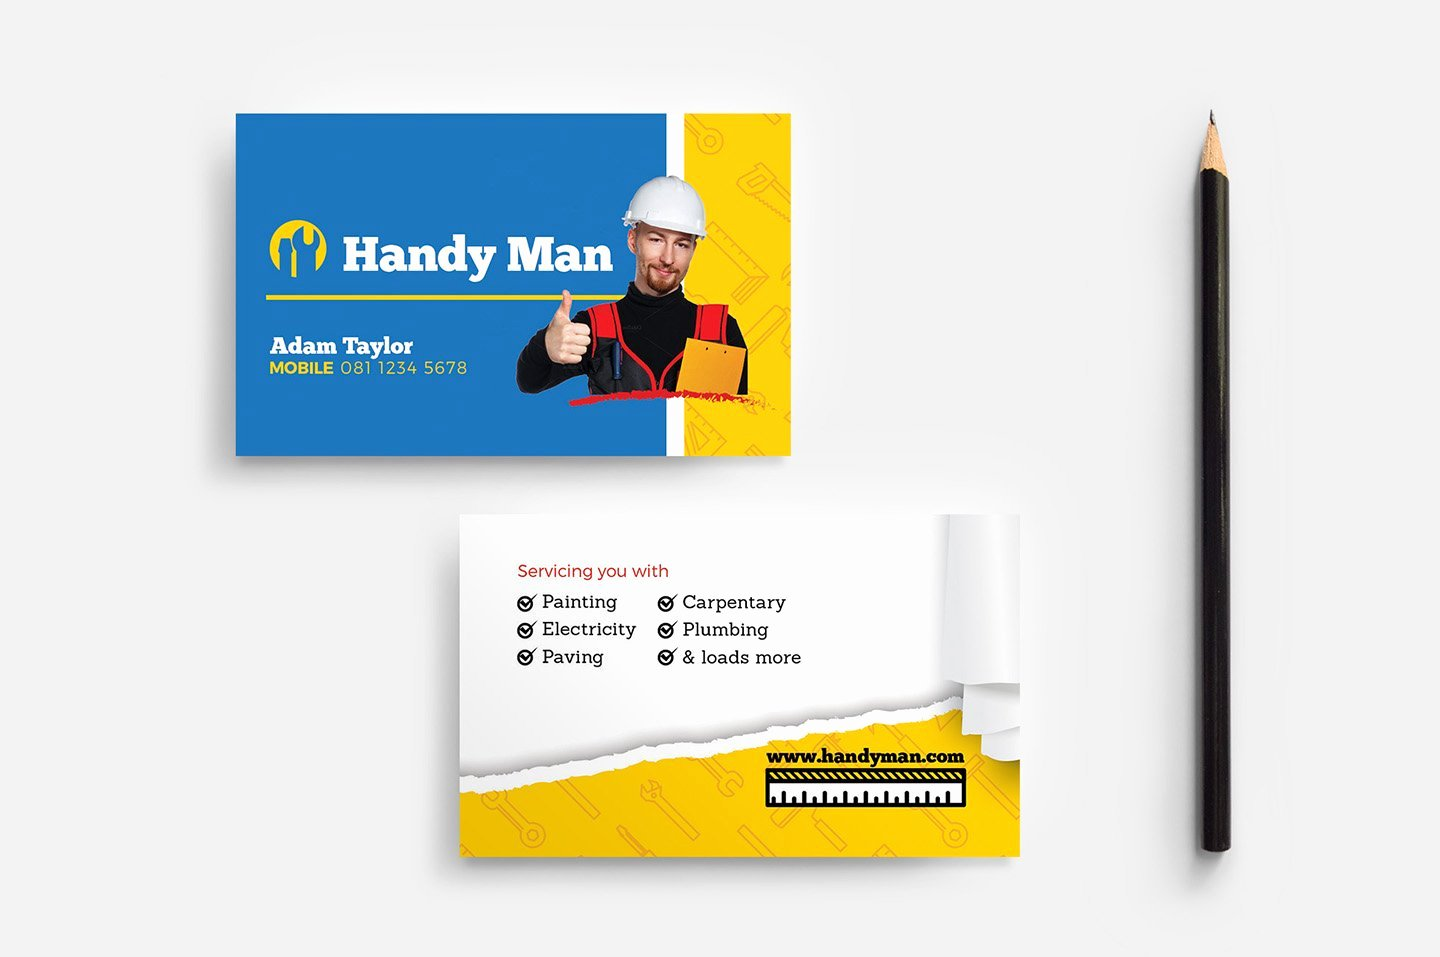 Handyman Business Cards Templates Free New Handyman Business Card Template Business Card Templates Creative Market